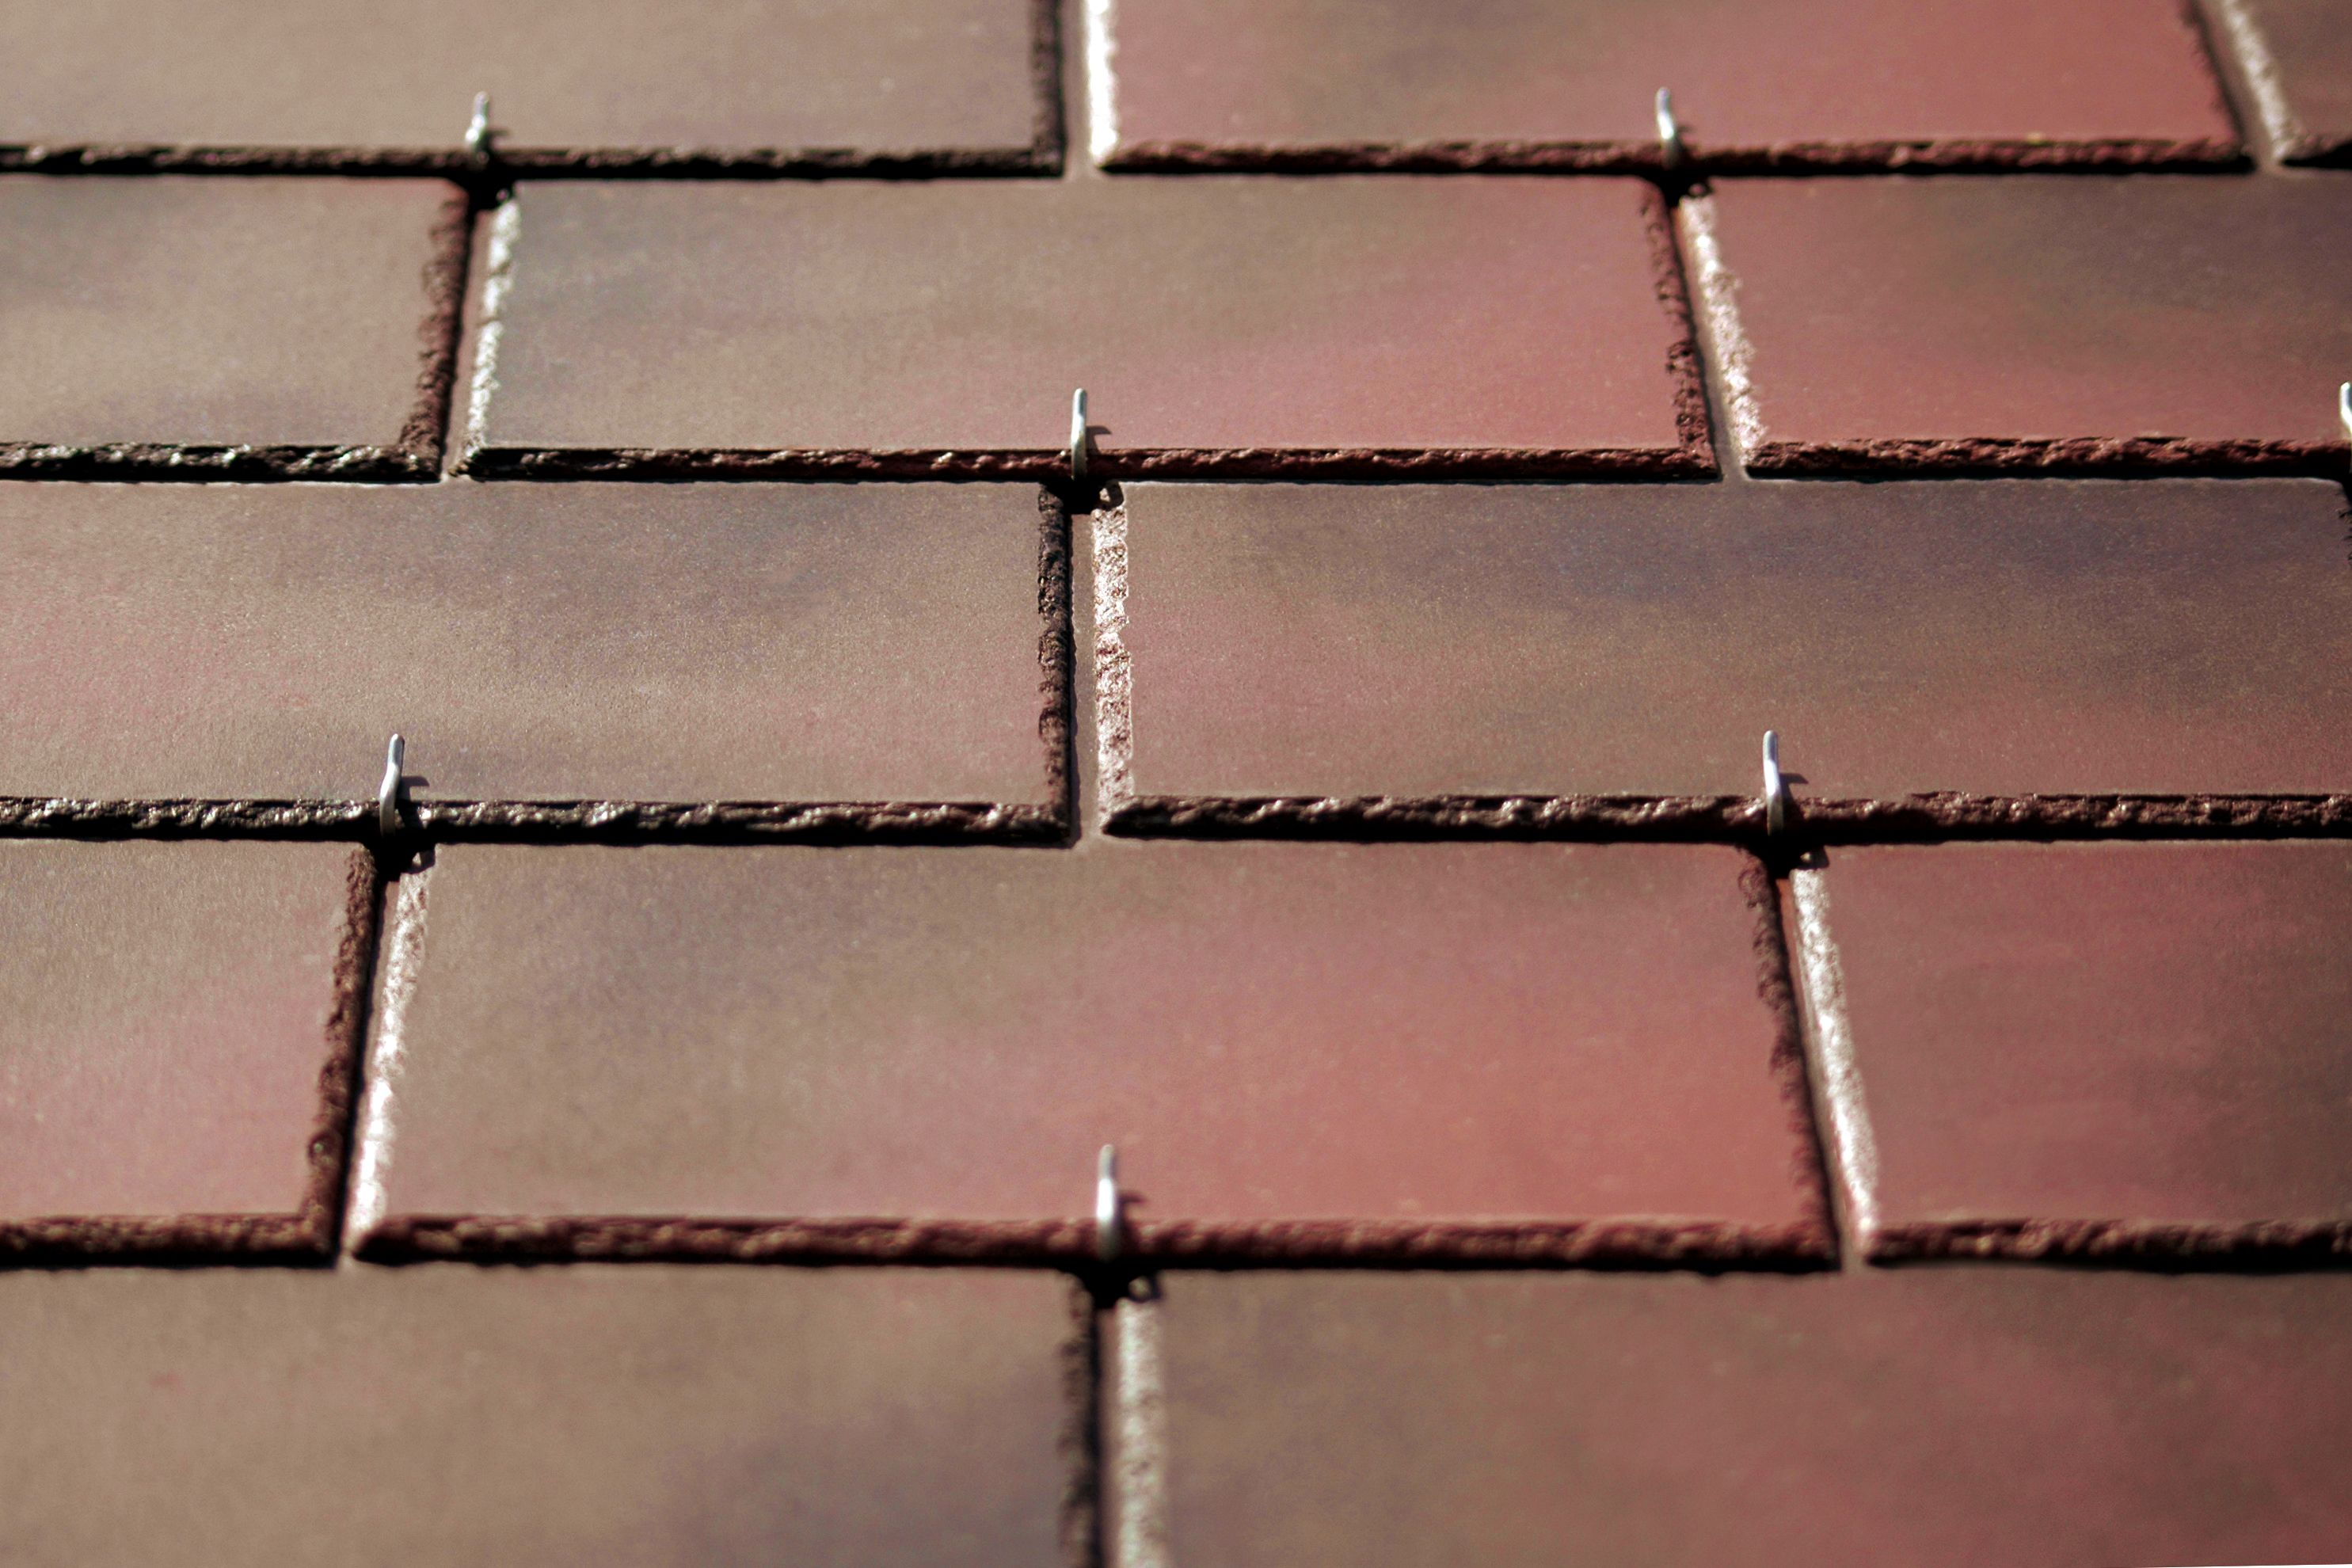 Flame brown birkdale slates down to 15 degrees fibre for Fiber cement composite roofing slate style